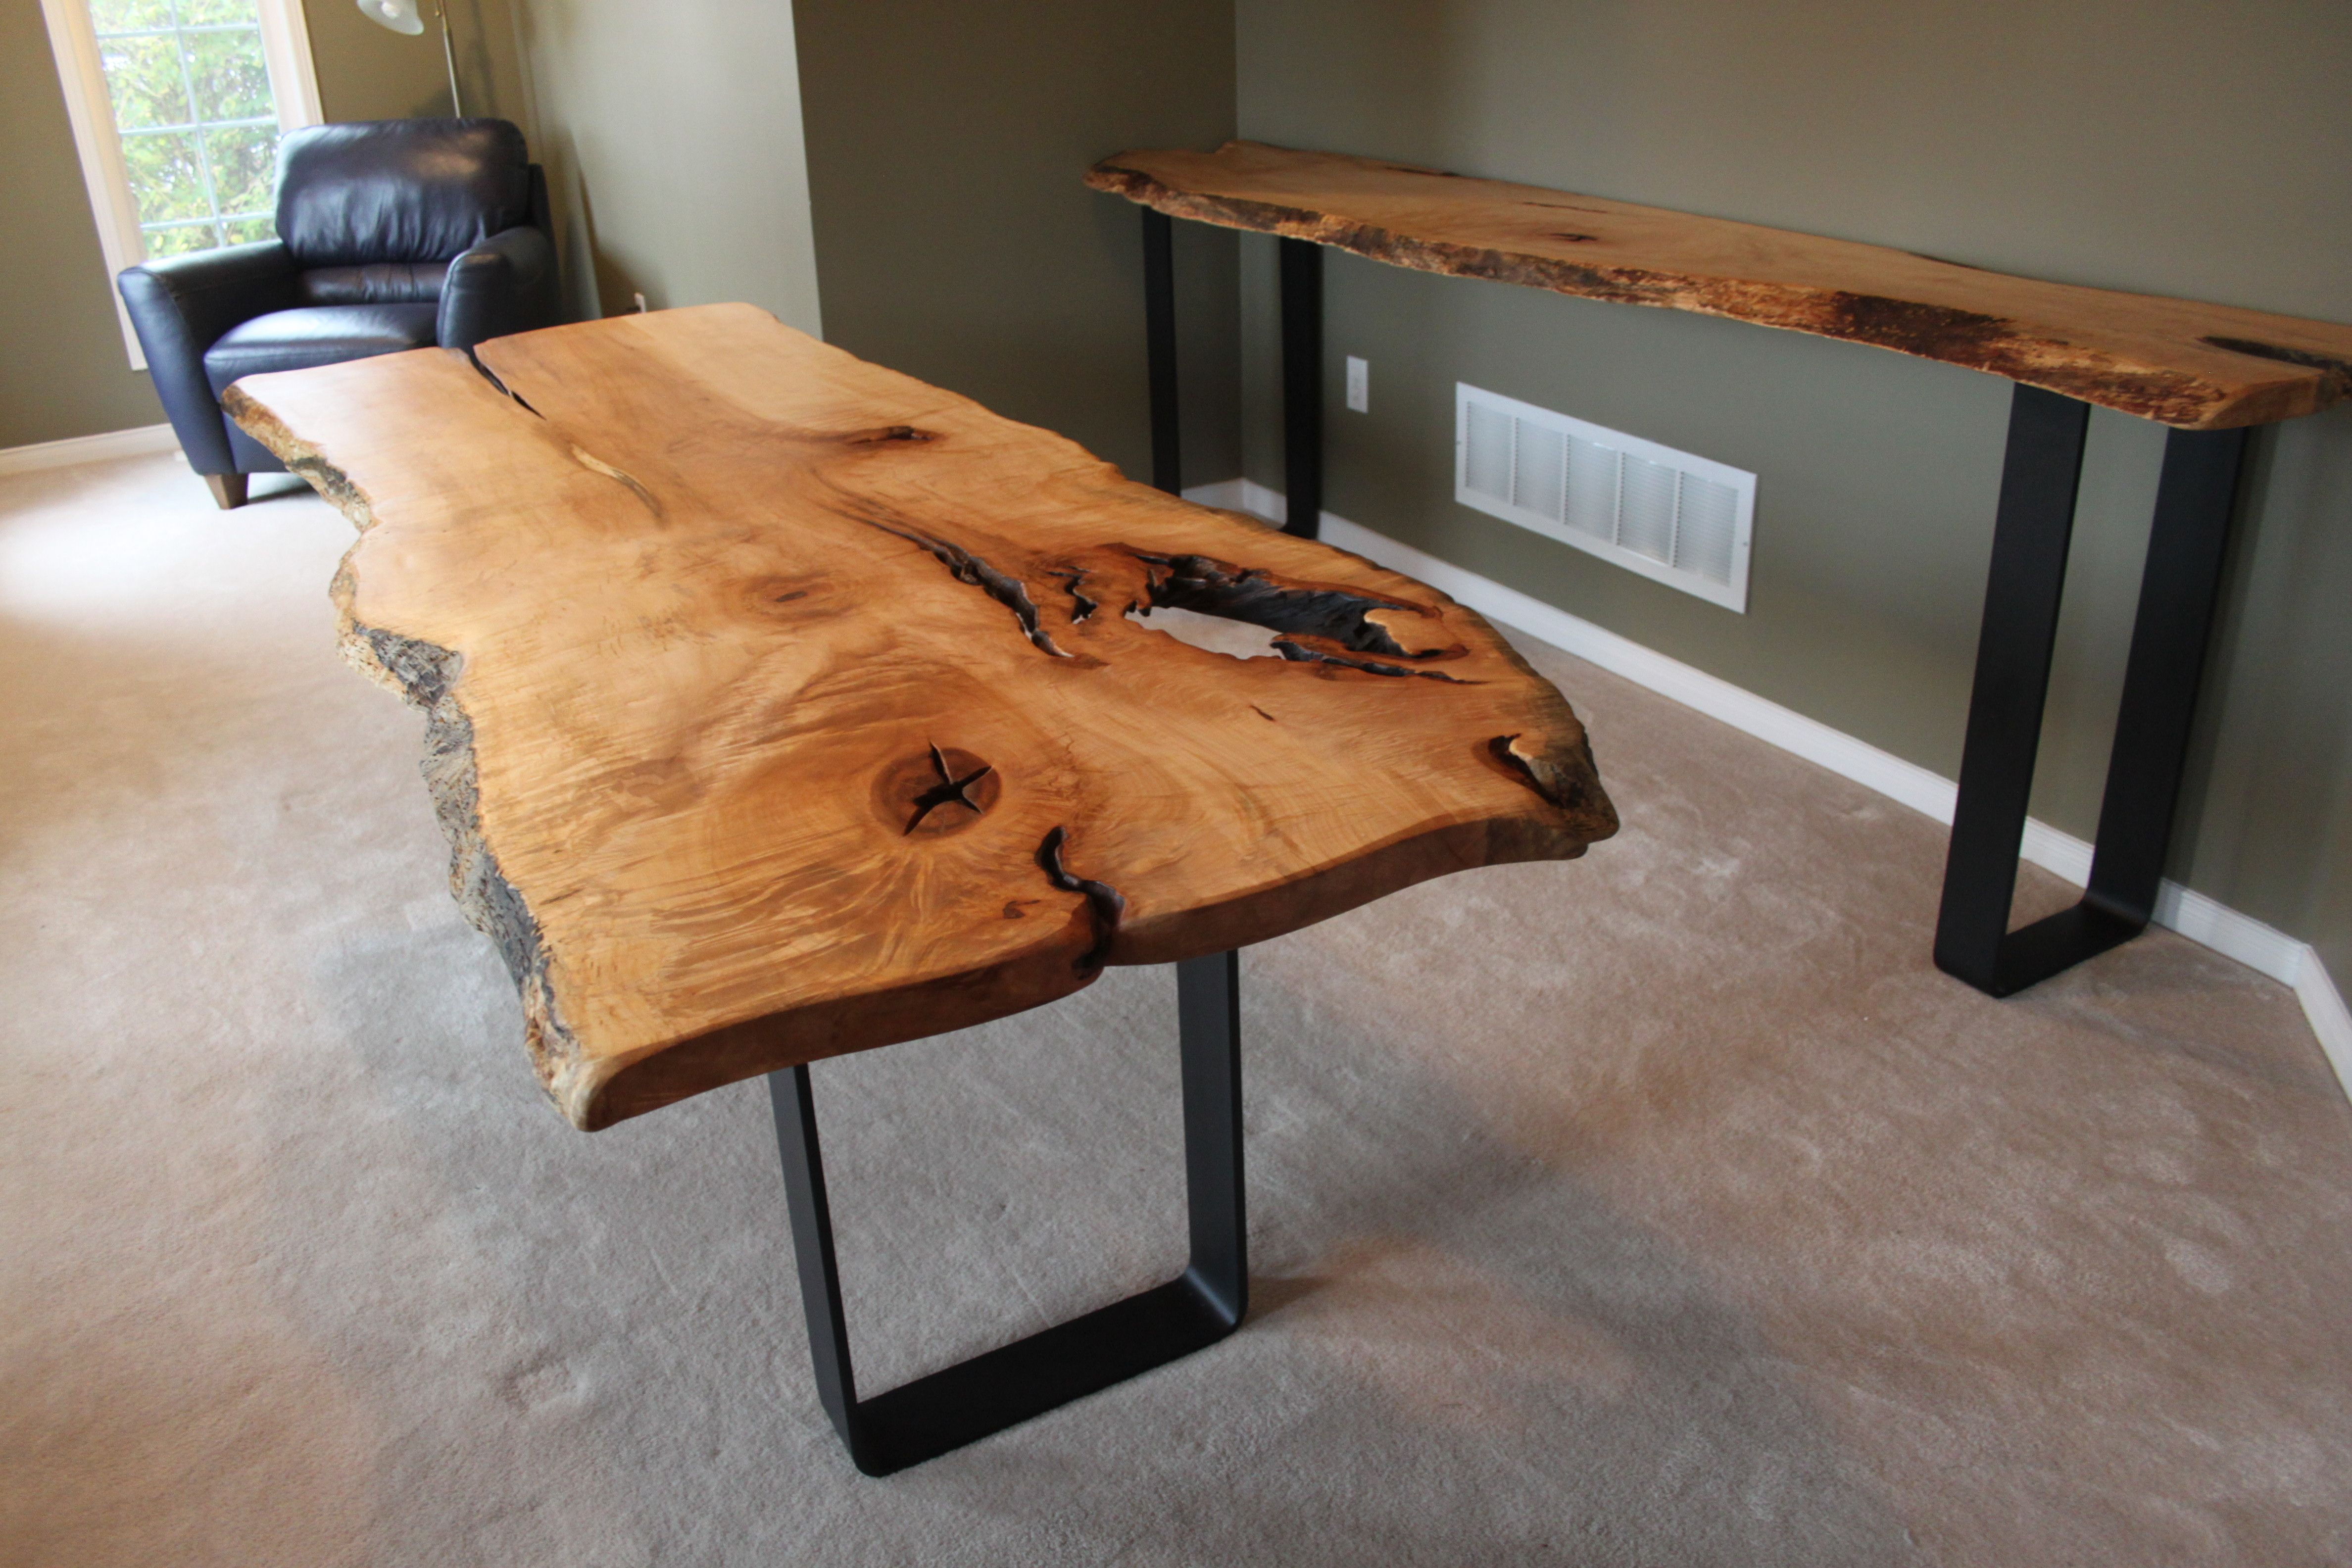 New Coffee Table Designs Offer Style And Functionality   Live Edge Furniture